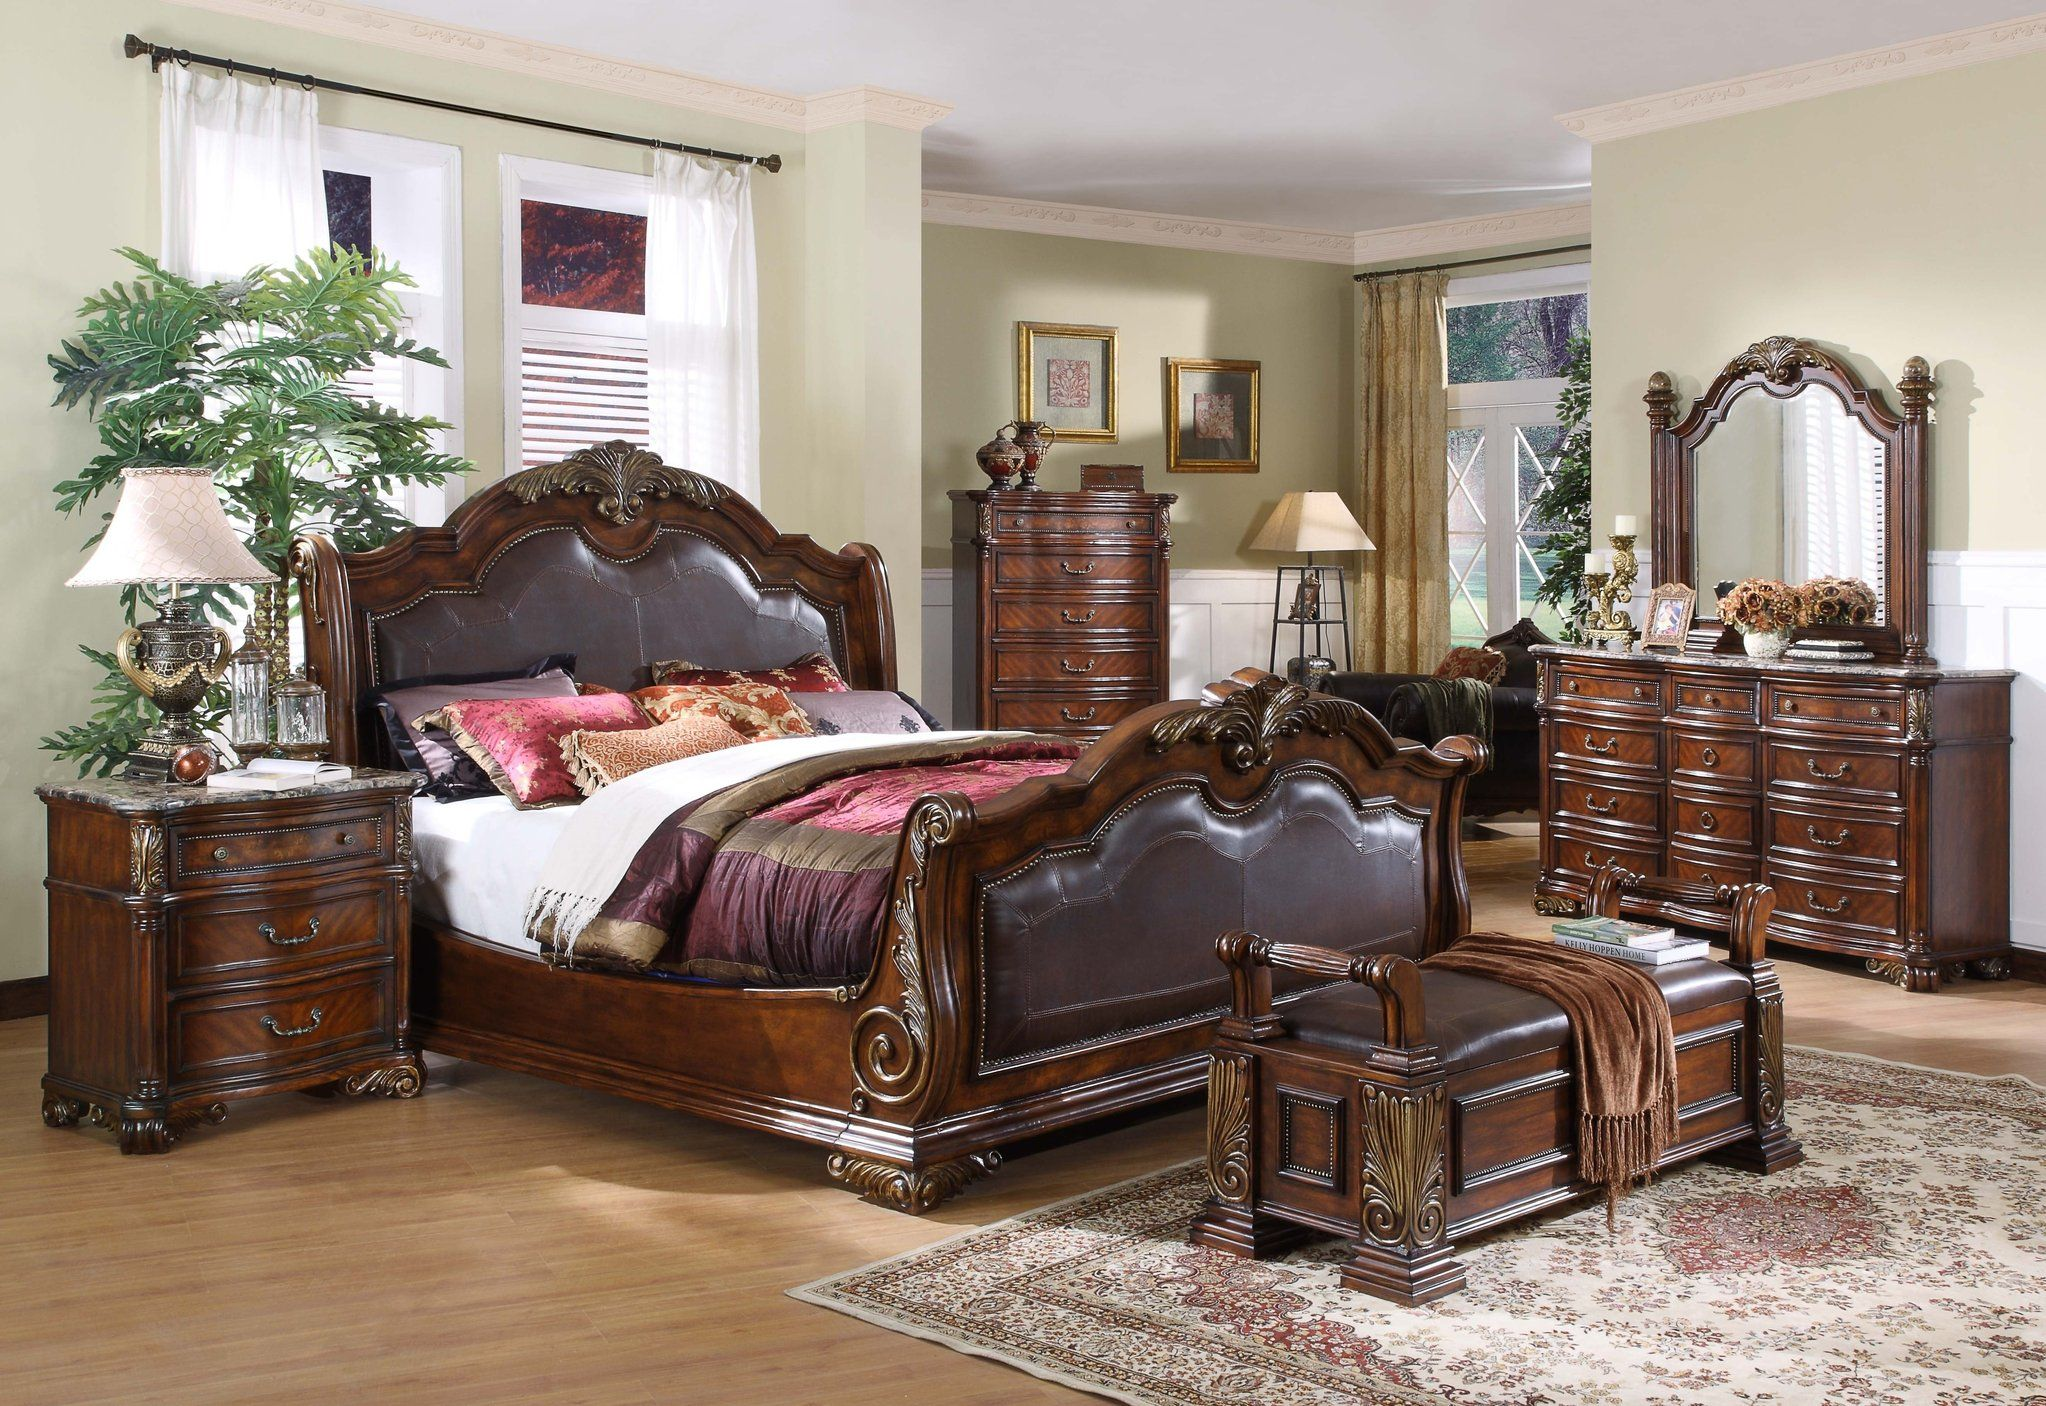 Excaliber or Canterberry 1999 Sleigh Bedroom Collection